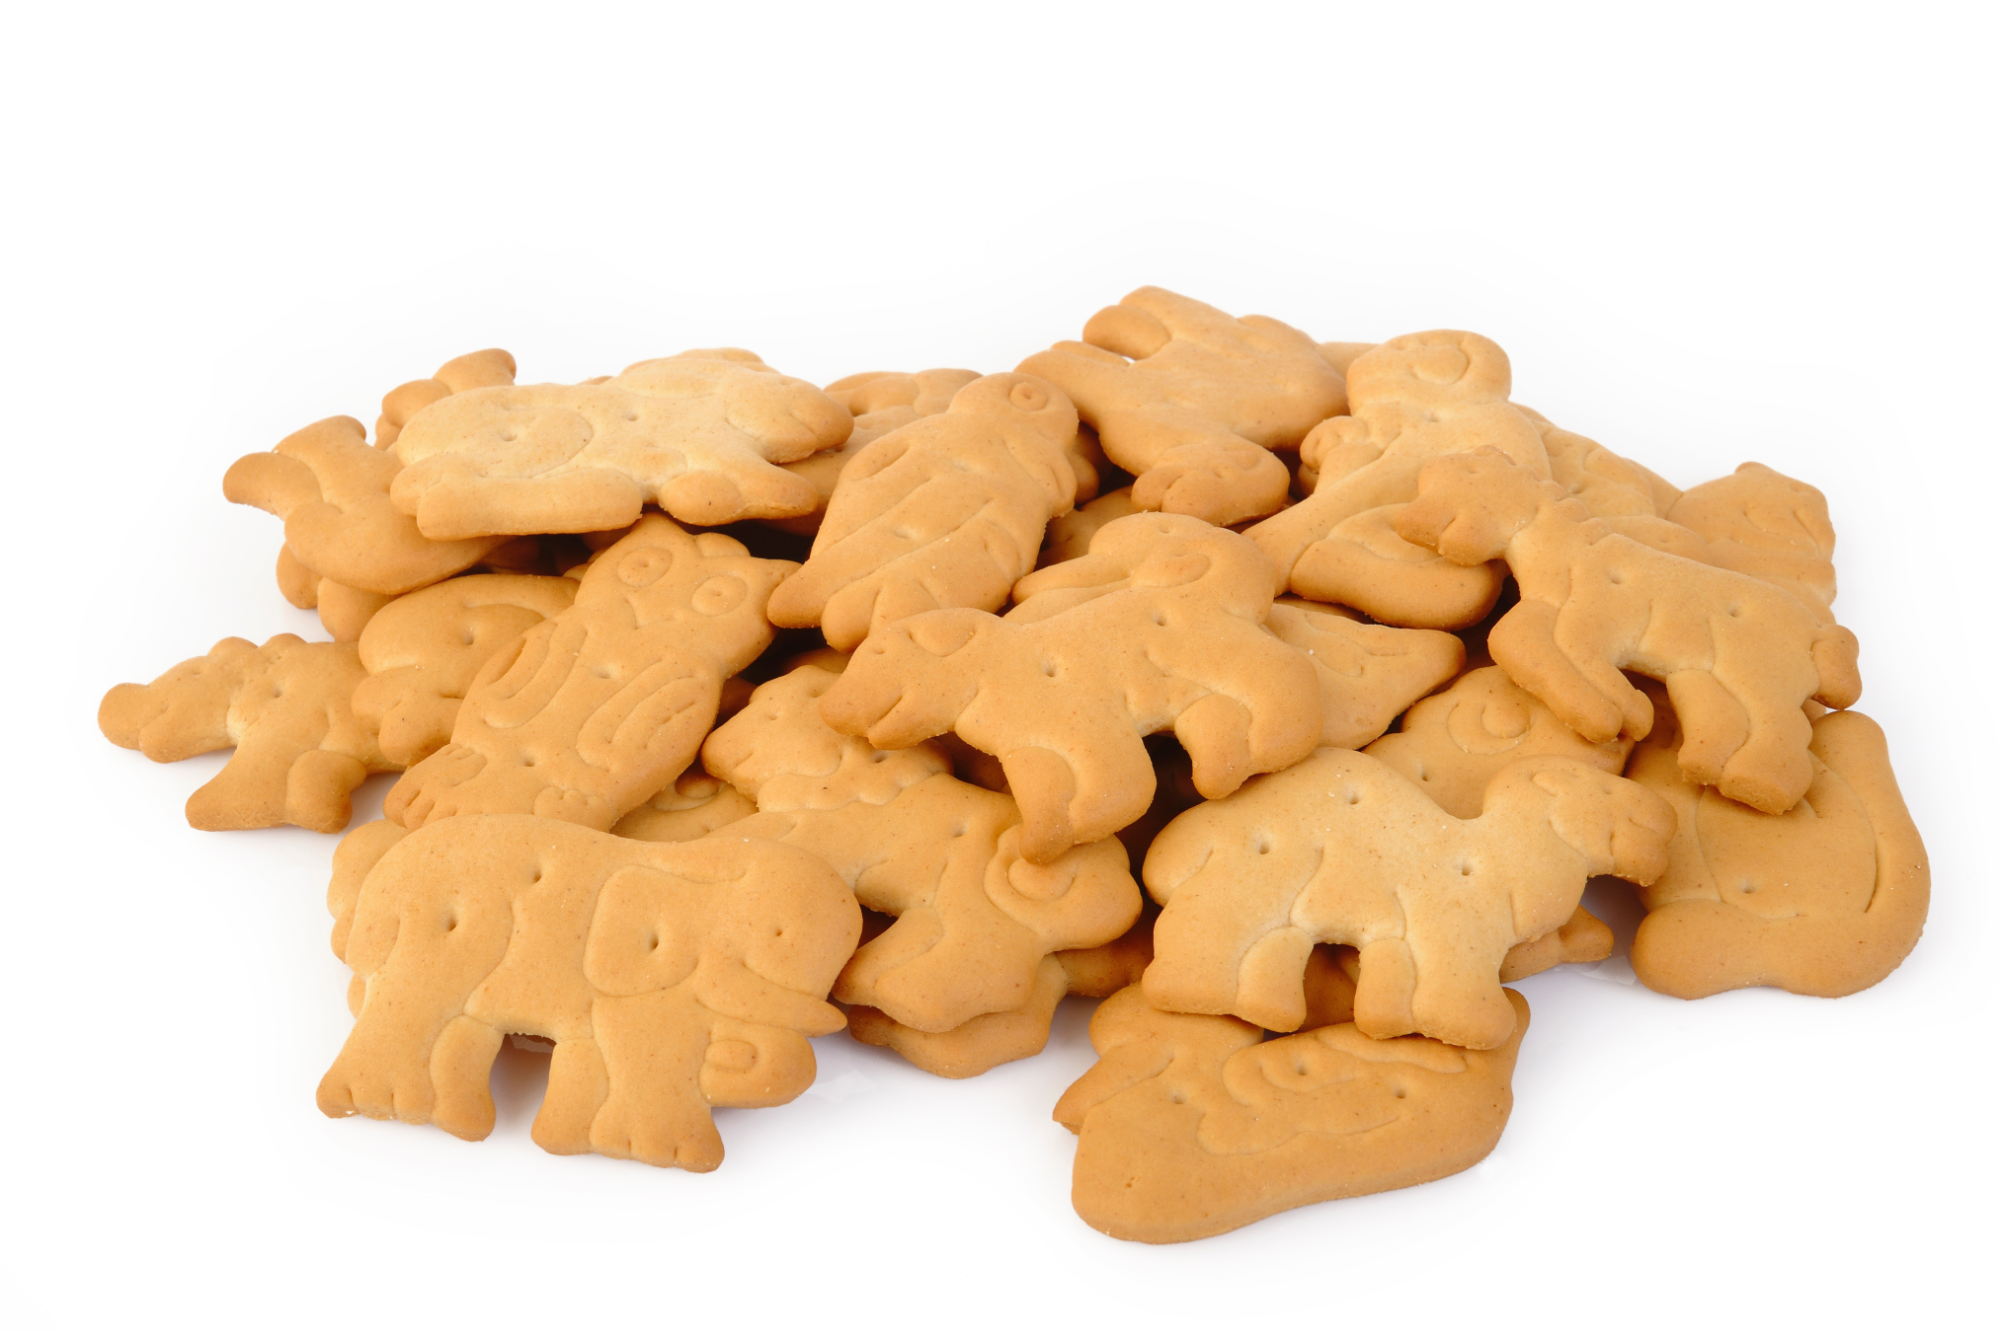 Does a vegetarian association ask that animal biscuits be banned?